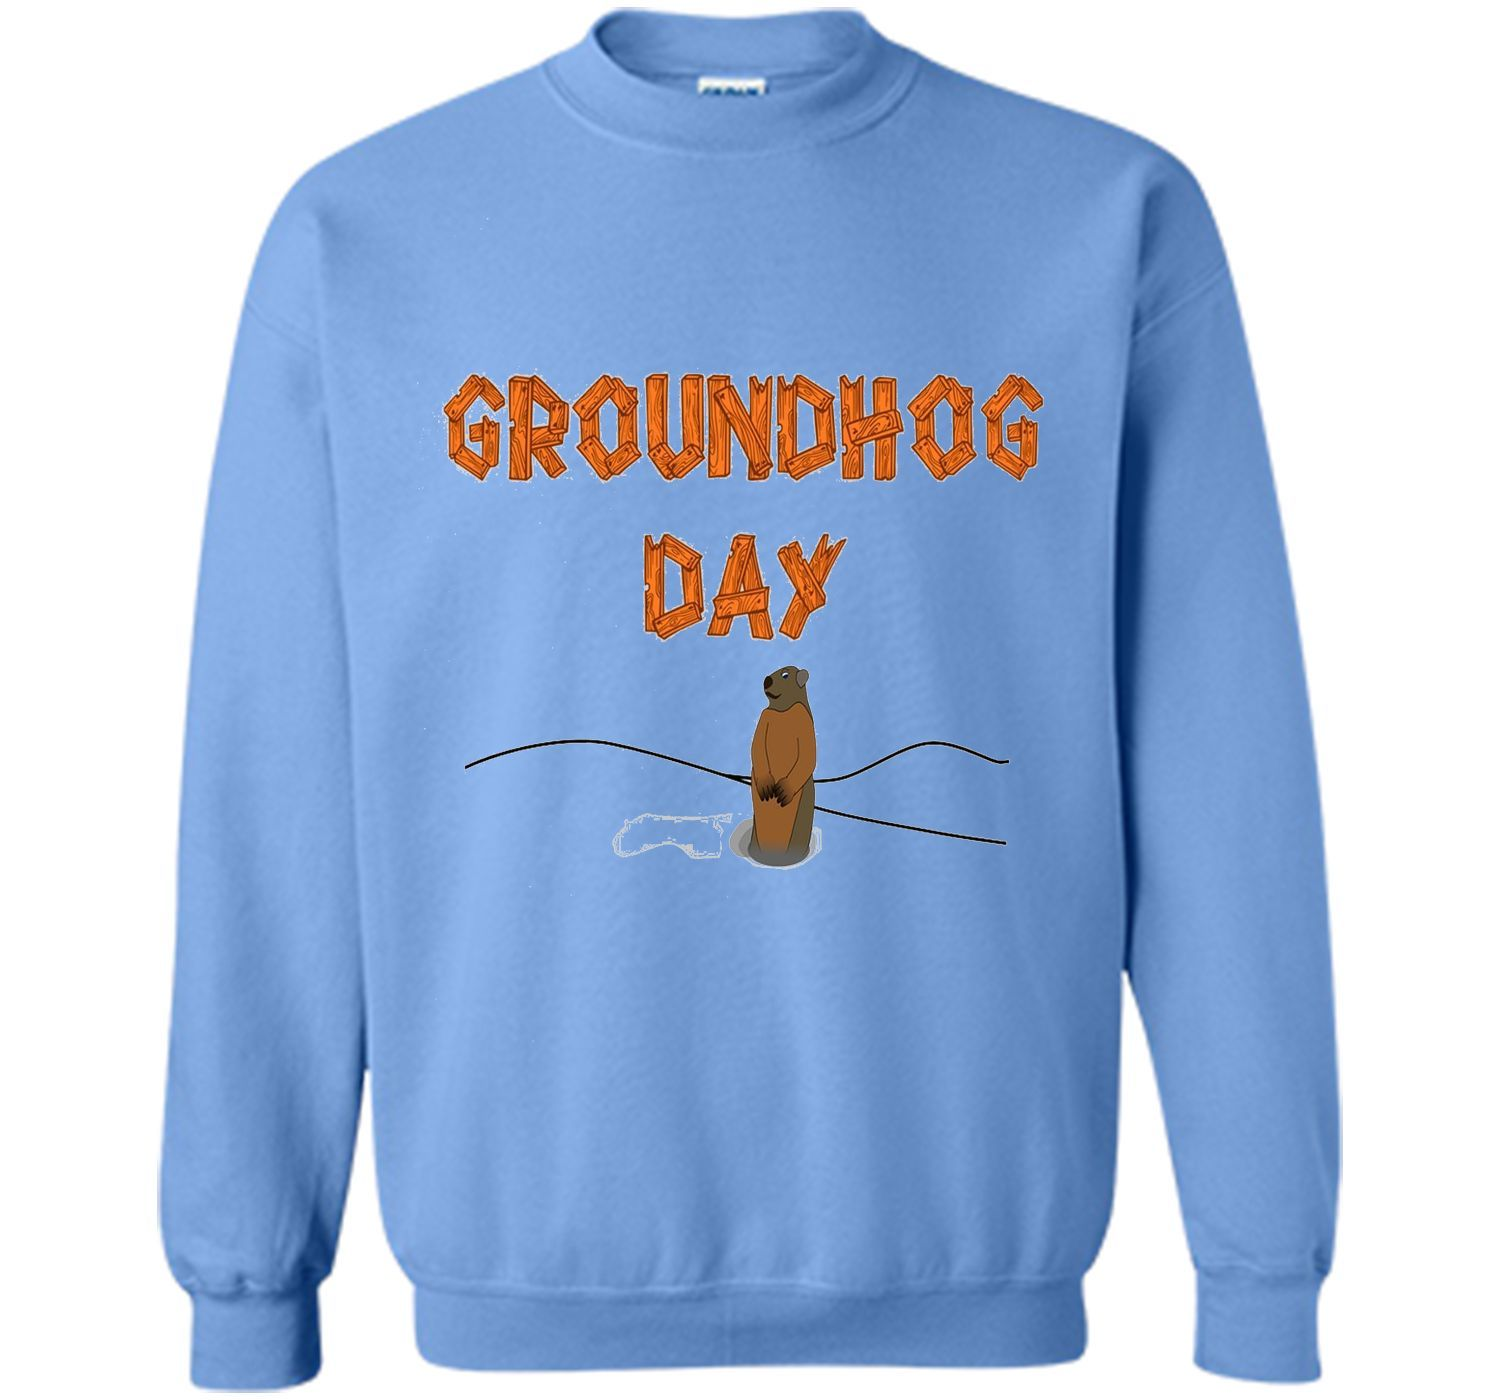 Groundhog day tee with picture